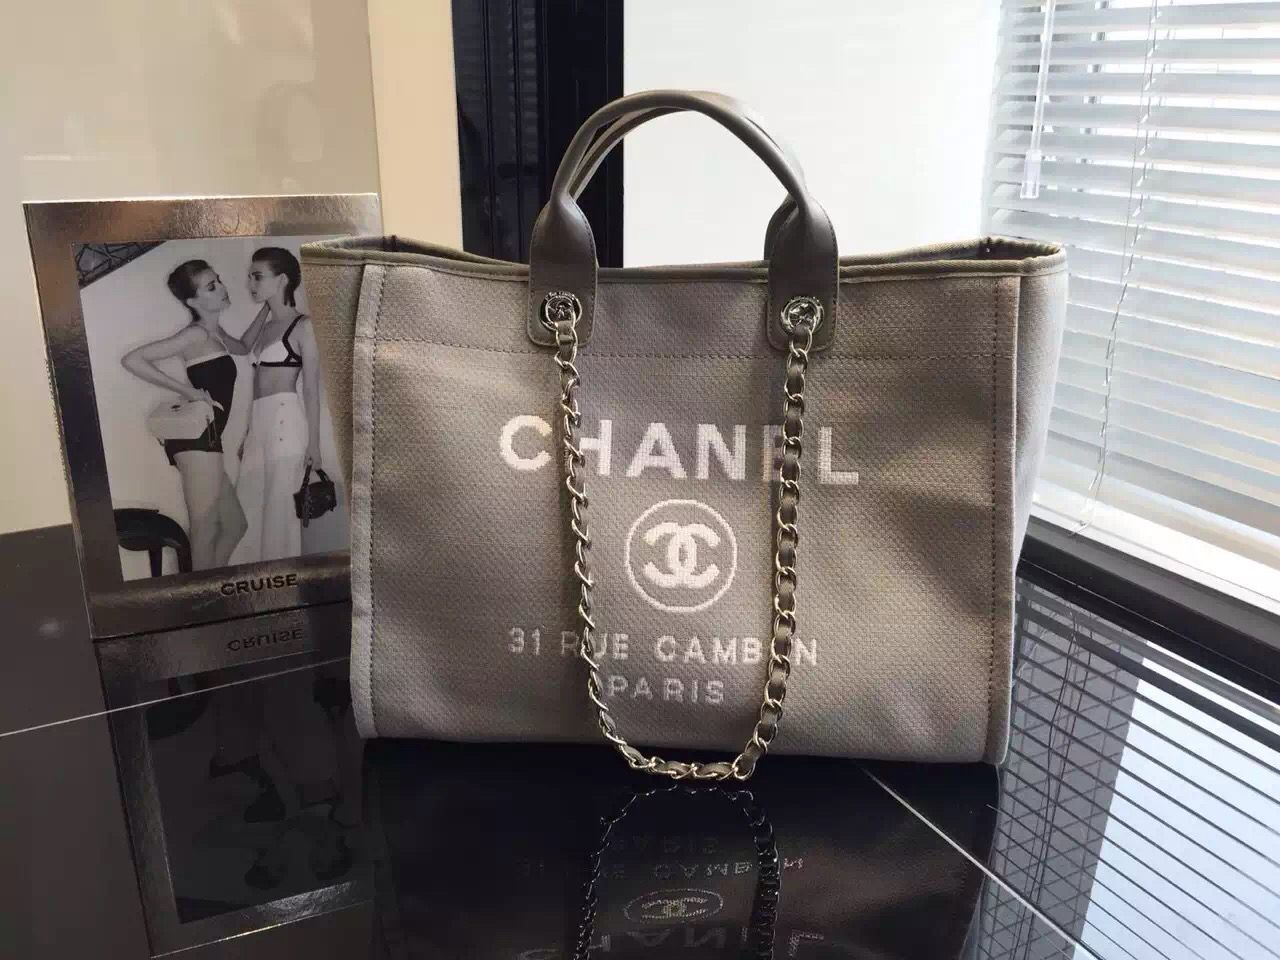 Chanel Toile Deauville Canvas Shopping Tote Bag 2015-2016 Collection ... 26da3e960cee2